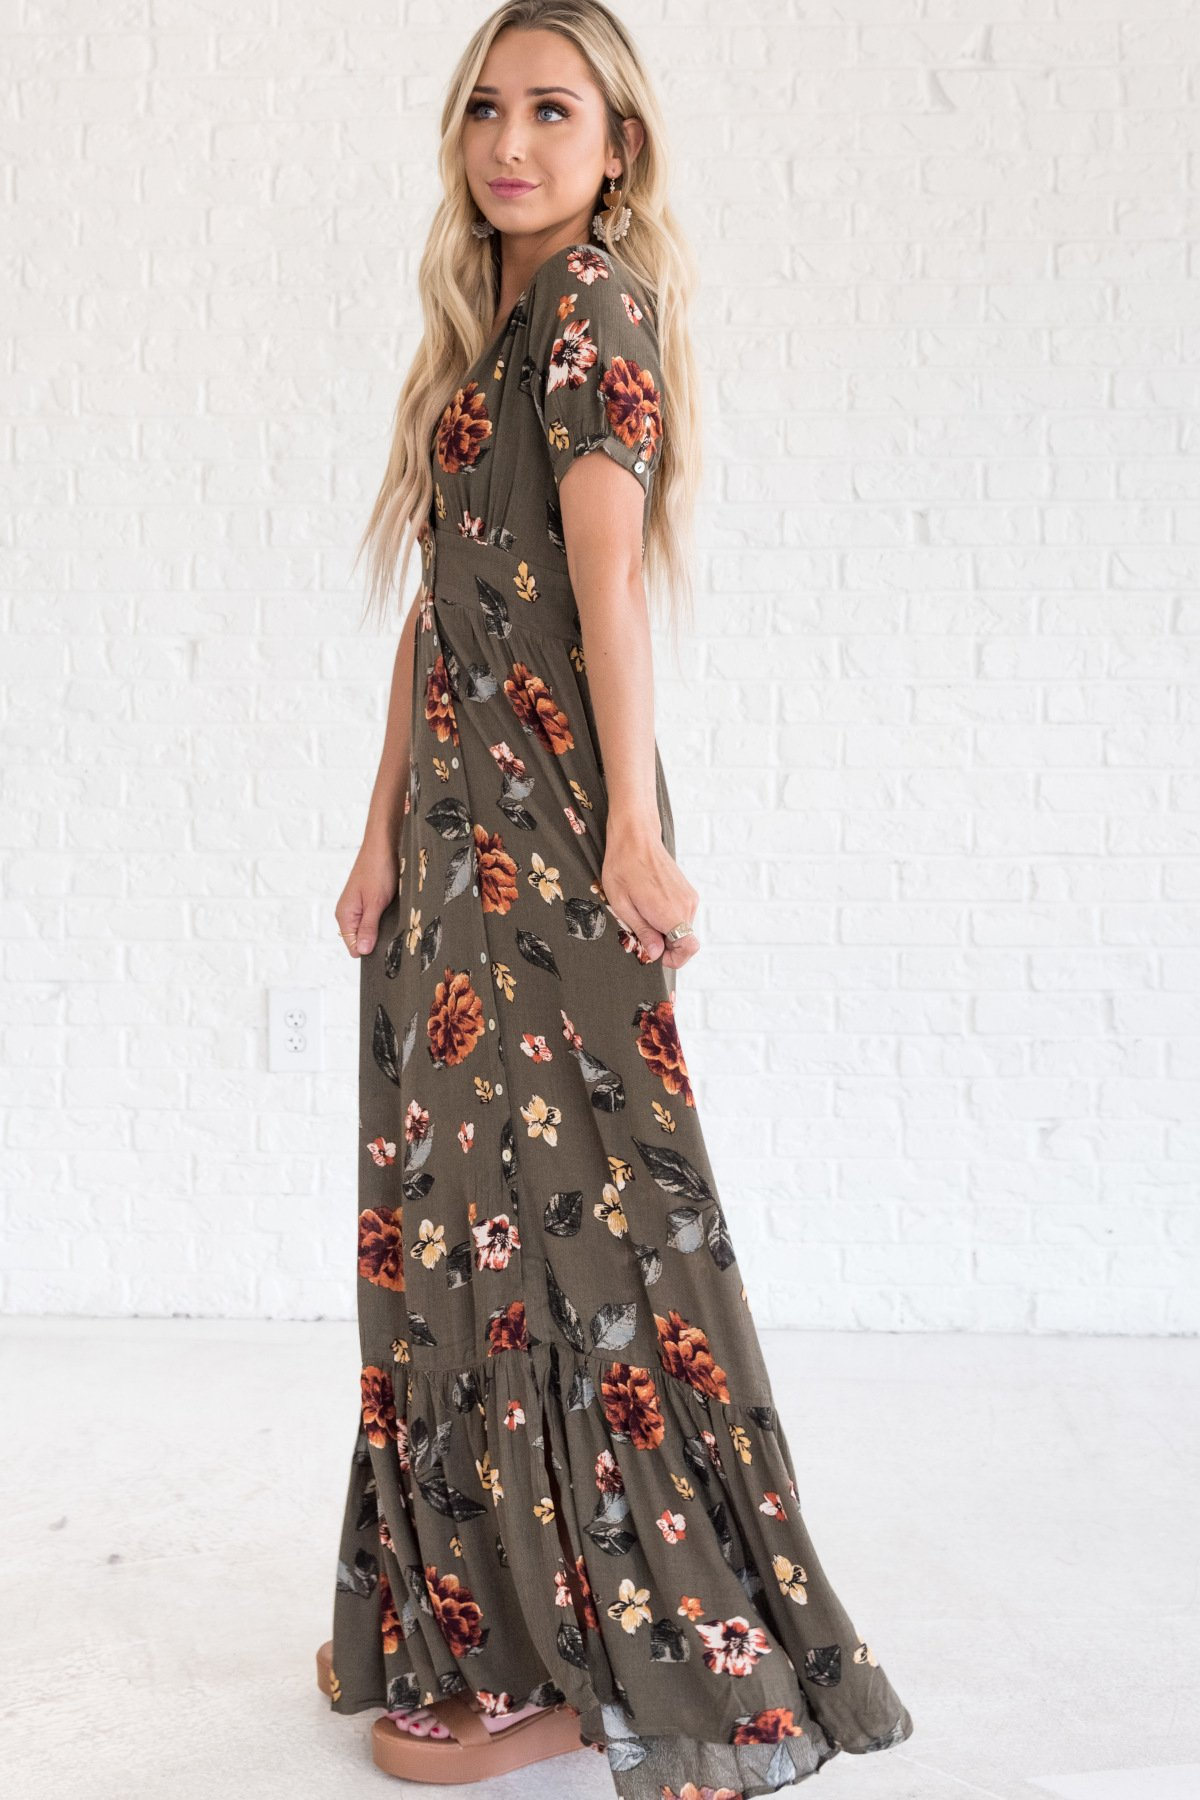 Stay_Humble_Olive_Green_Floral_Maxi_Dress-full_2000x.jpg